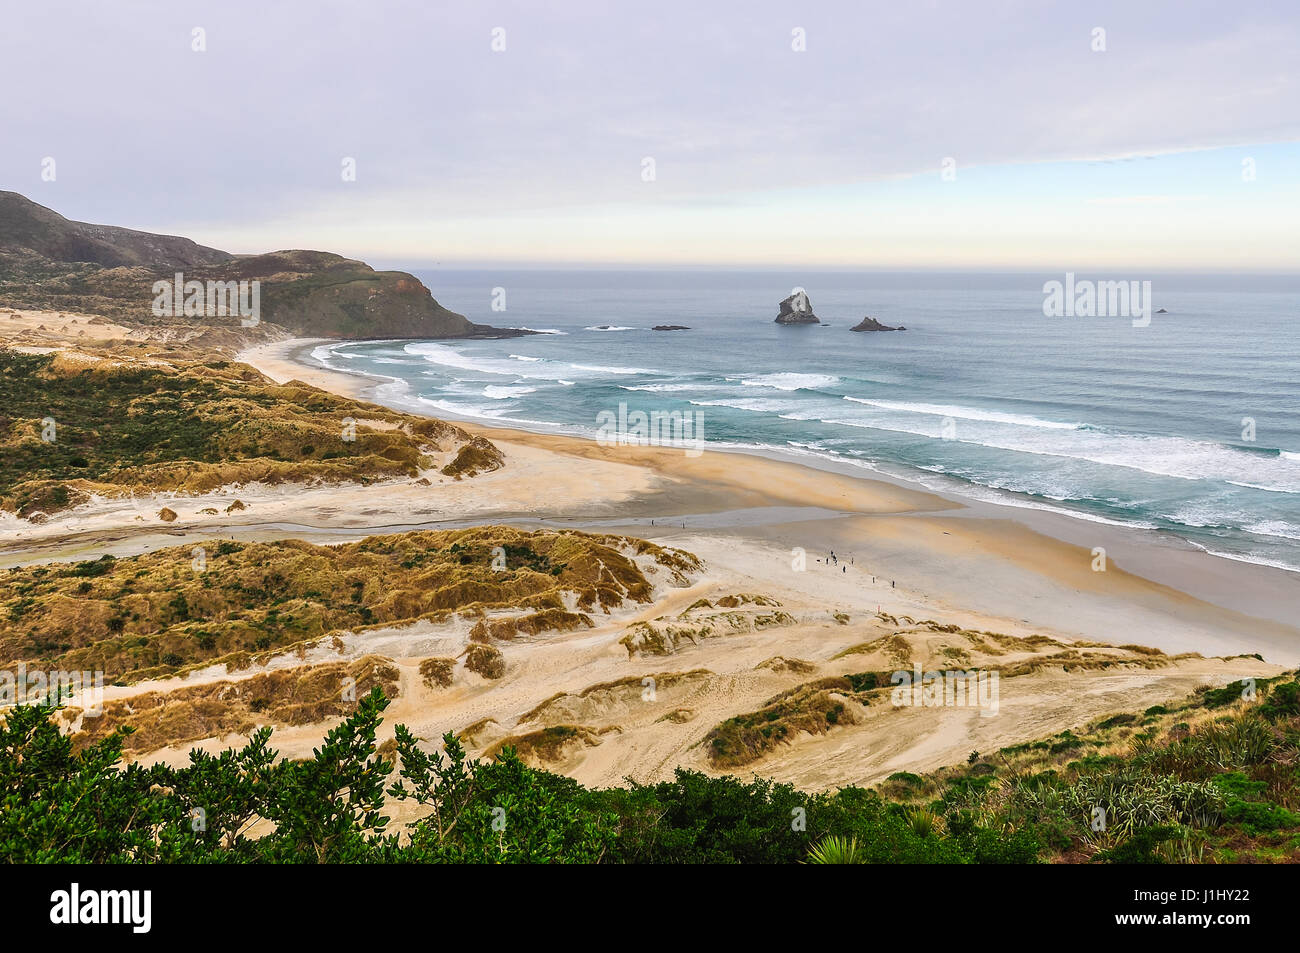 View of the almost empty beach in Sandfly Bay in Otago Peninsula, New Zealand - Stock Image